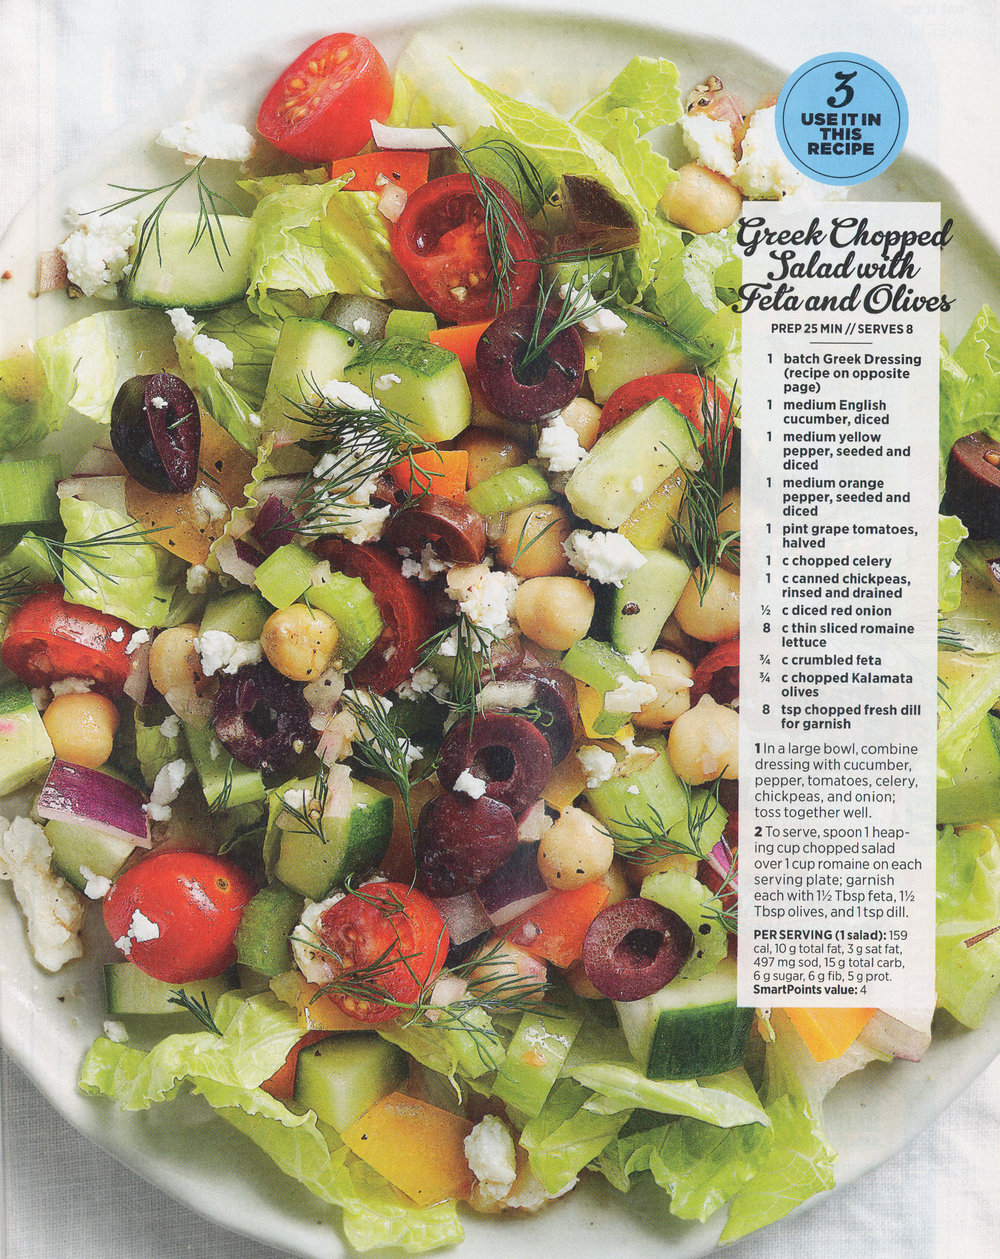 greek chopped salad with red wine vinaigrette.jpg